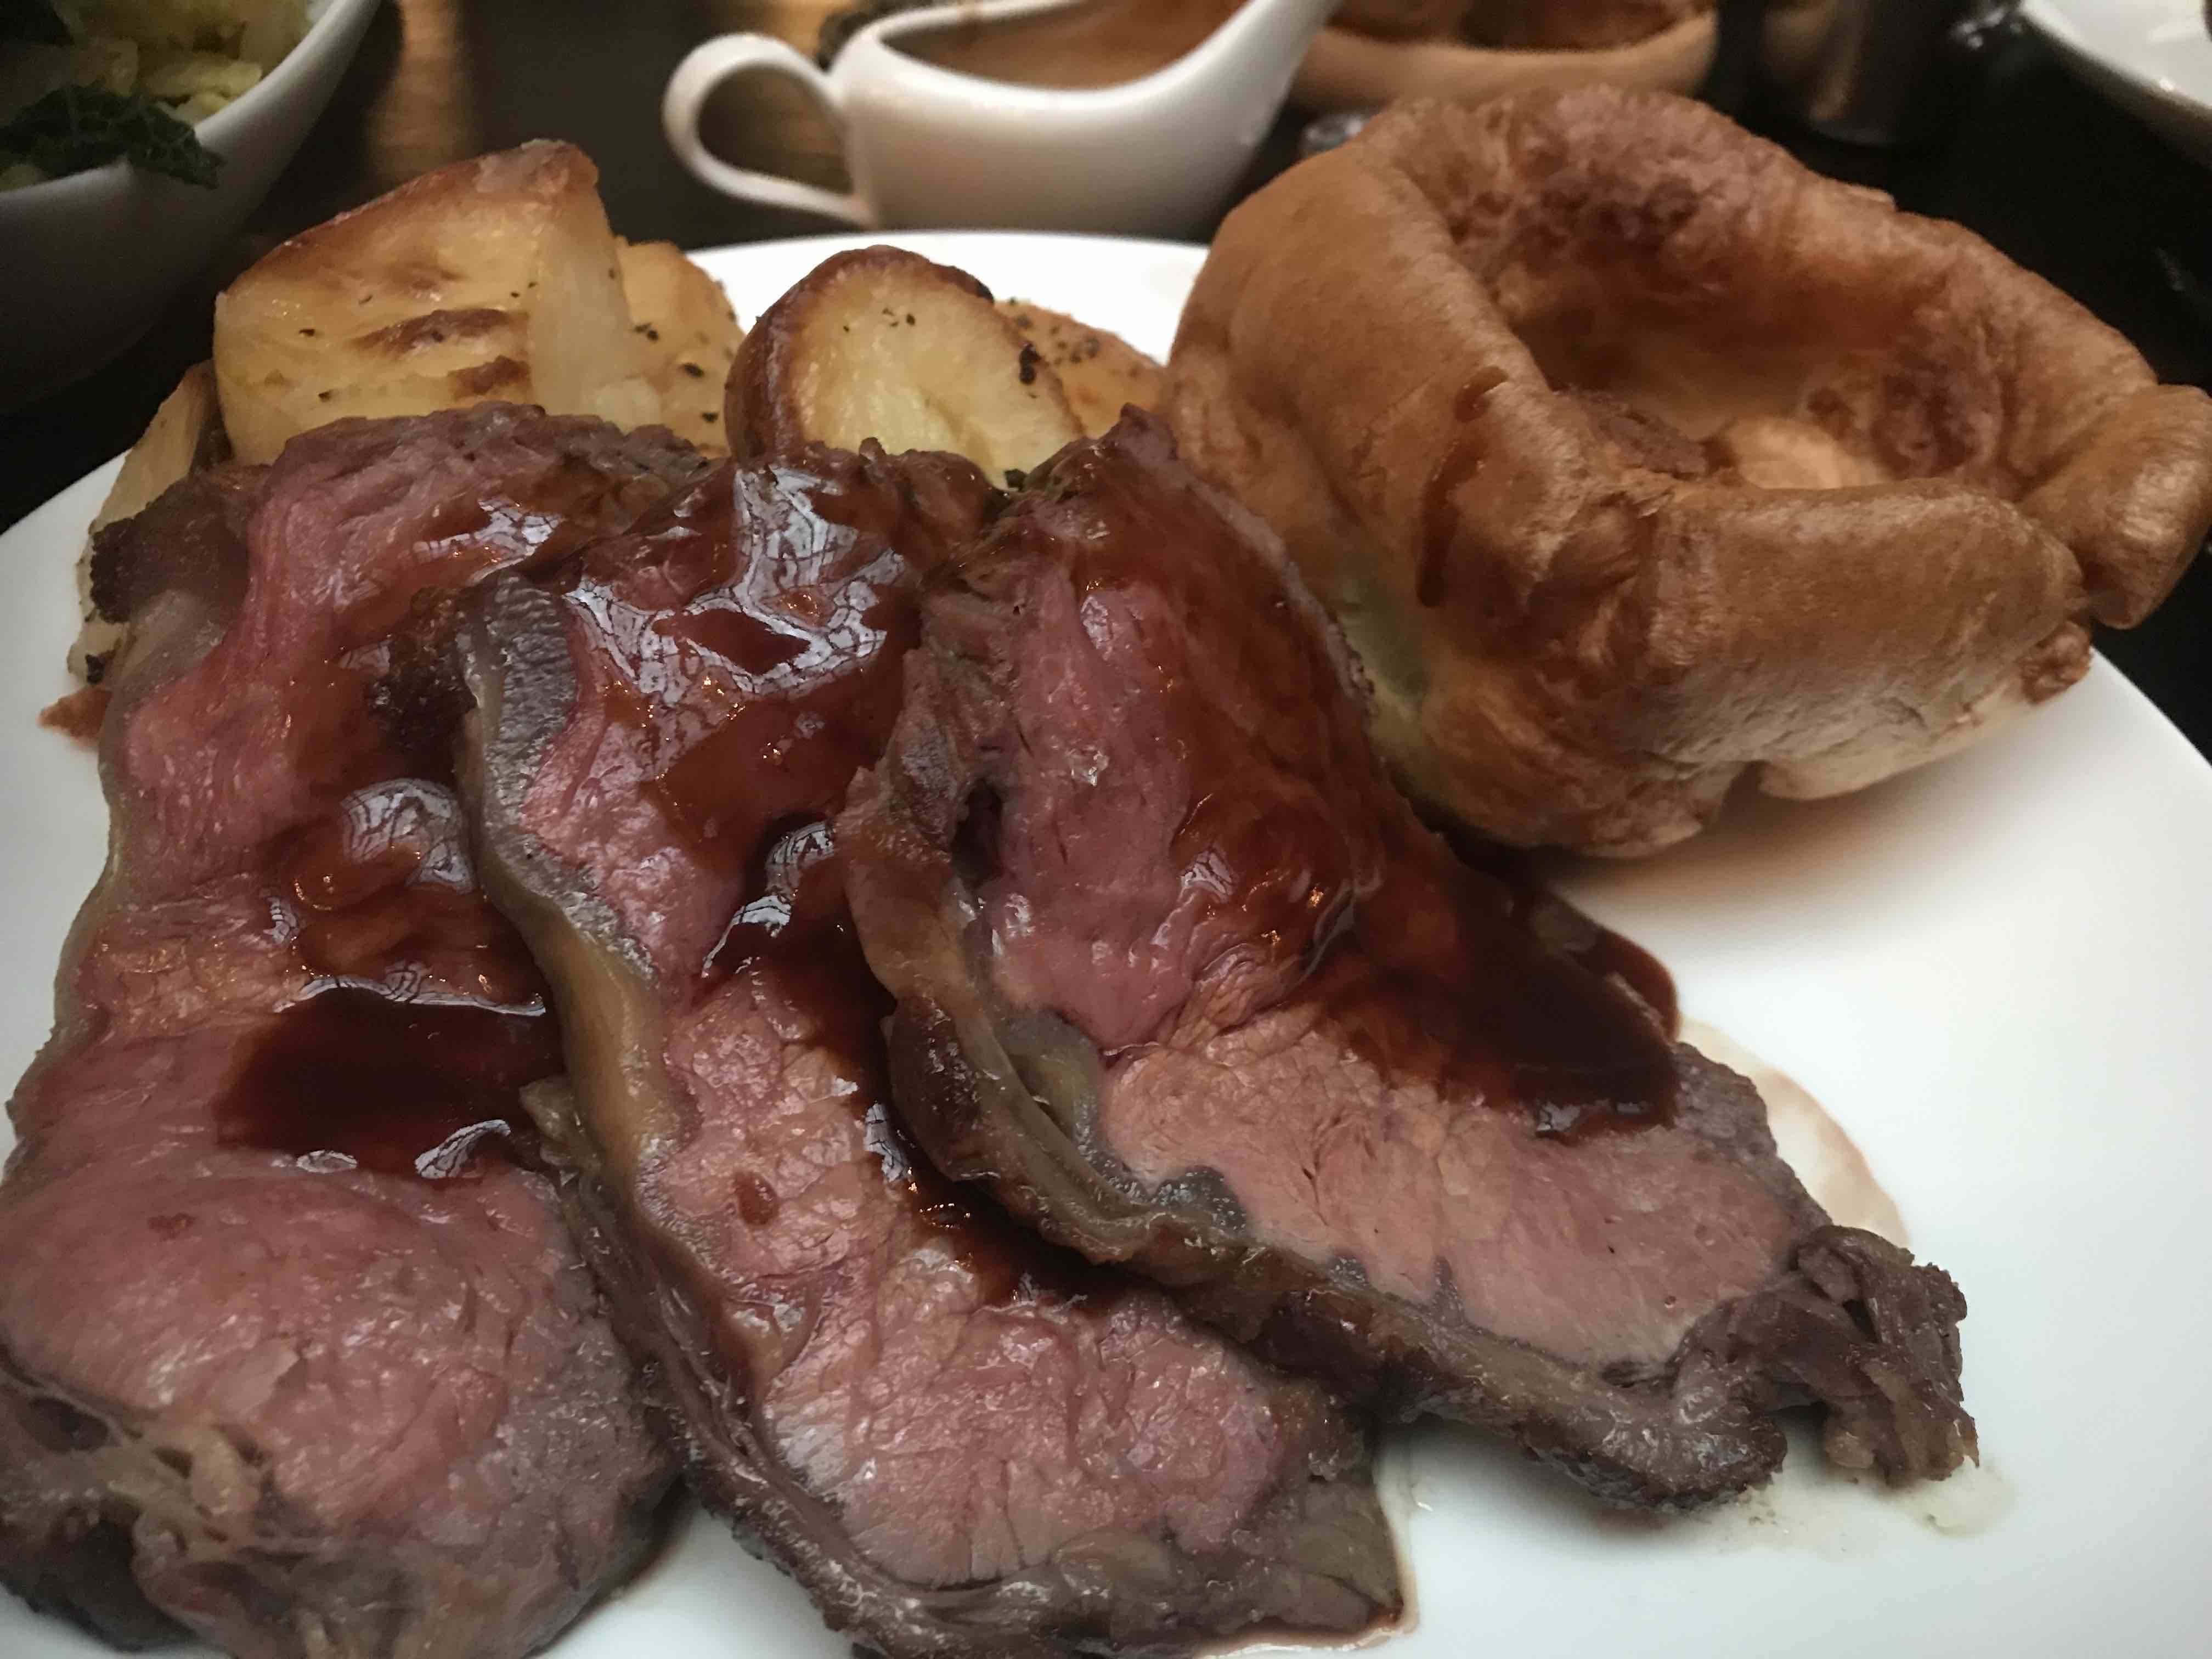 Singing the praises of Gaucho's Gospel Brunch and Sunday Roast